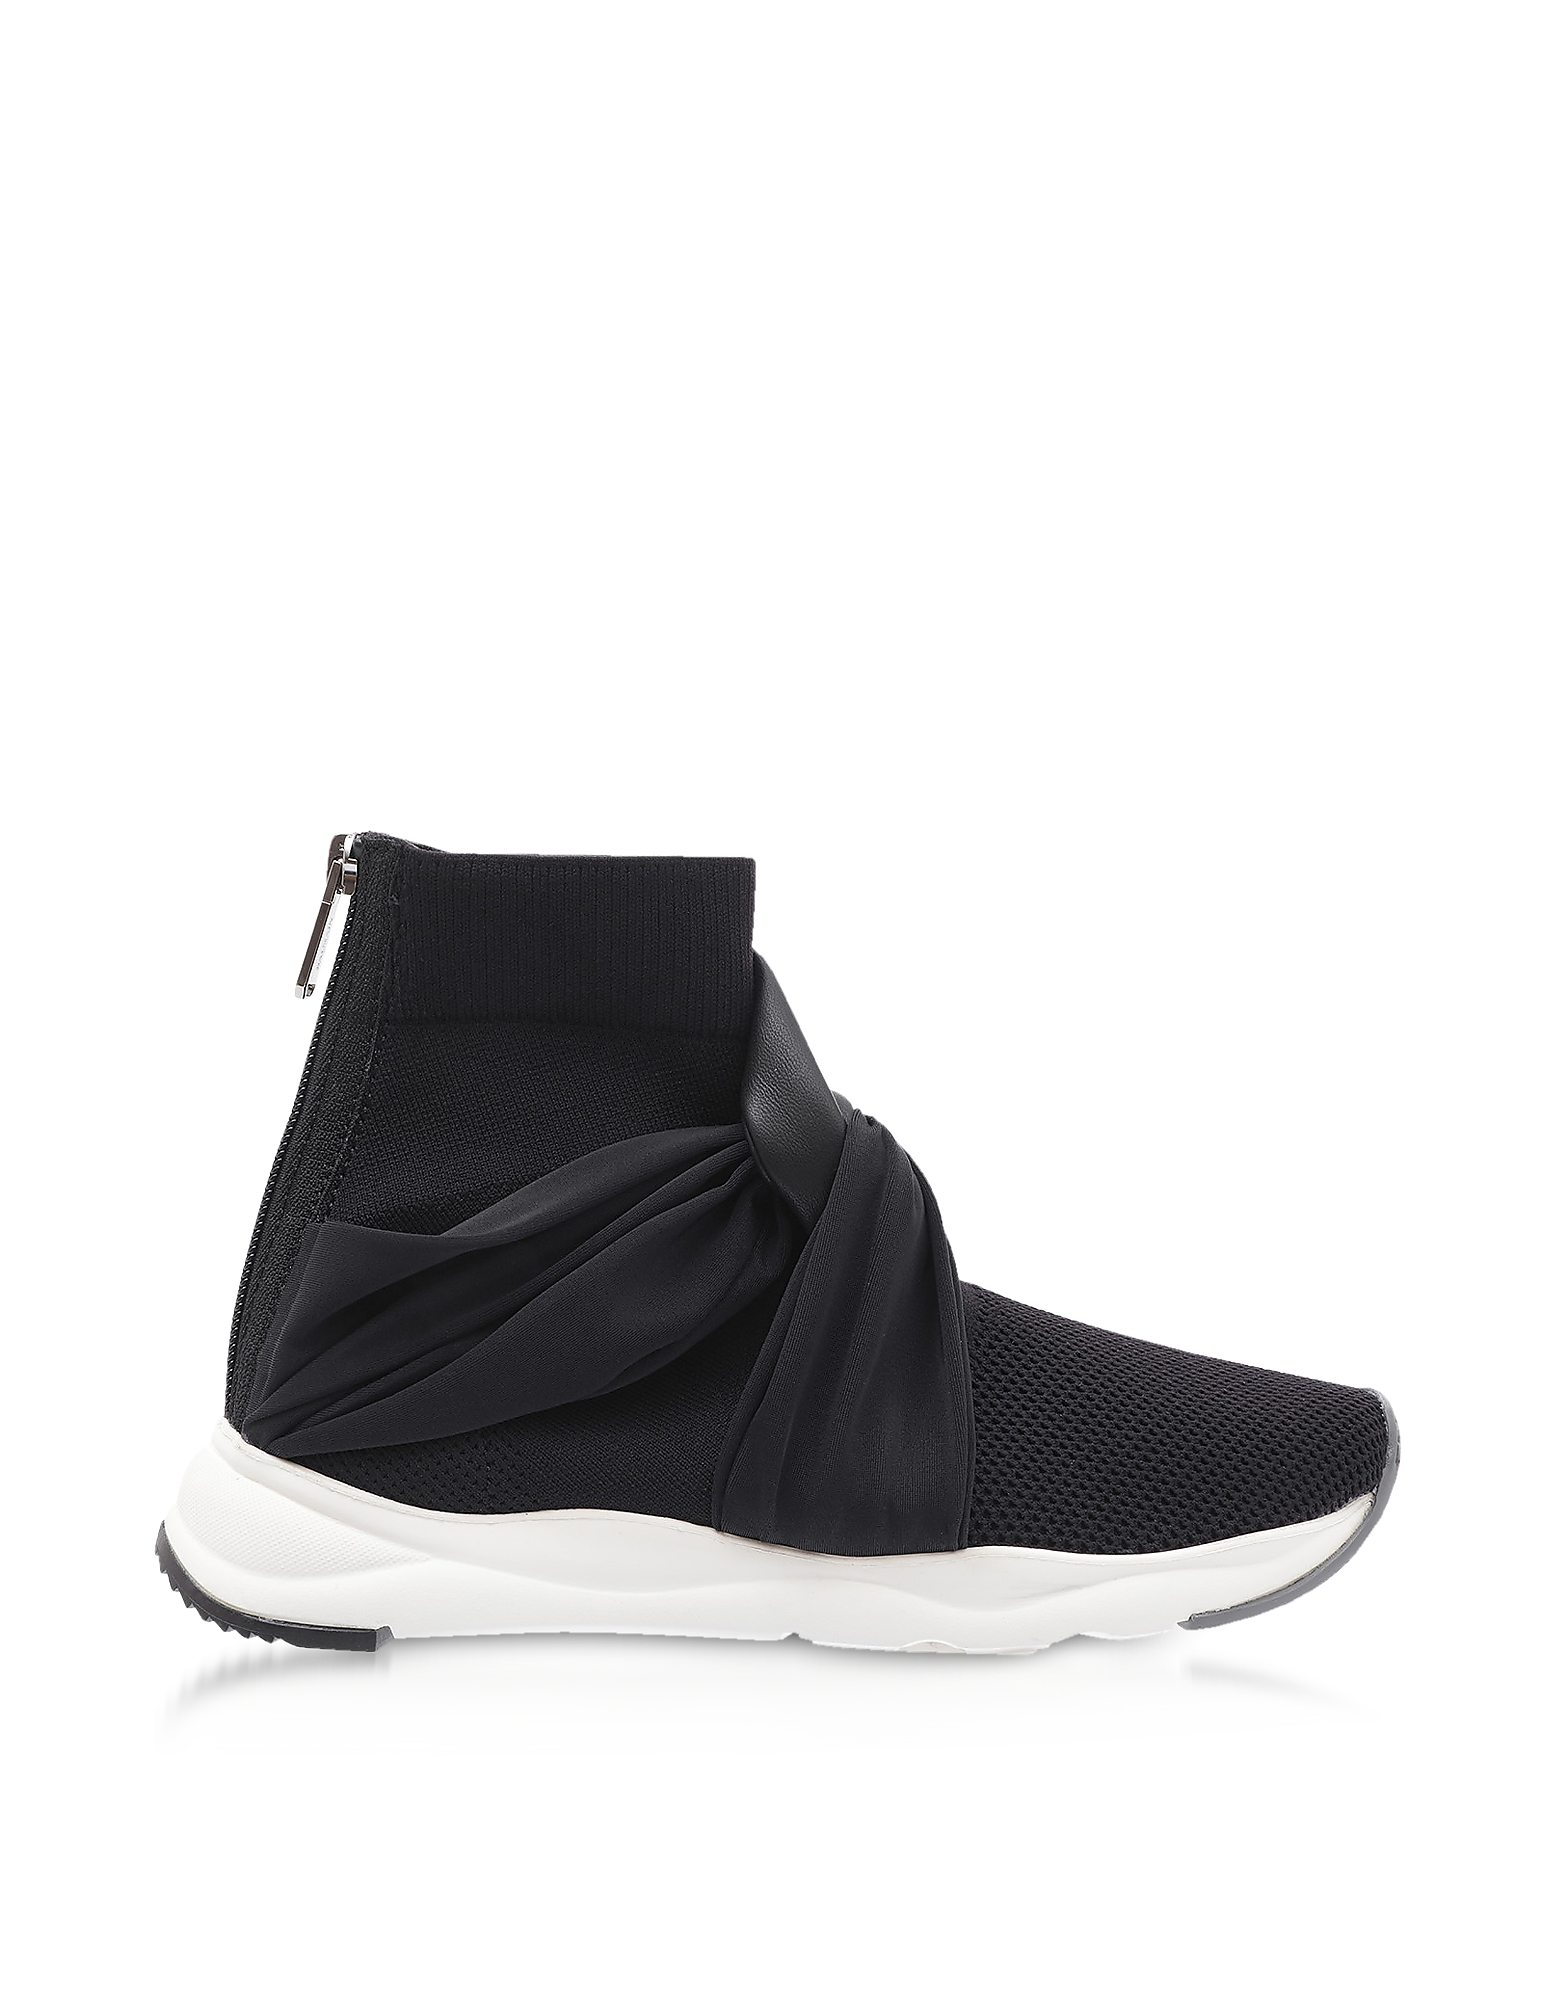 Balmain Shoes, Black Fabric and Leather Knot-knit Cameron Running Women's Sneakers